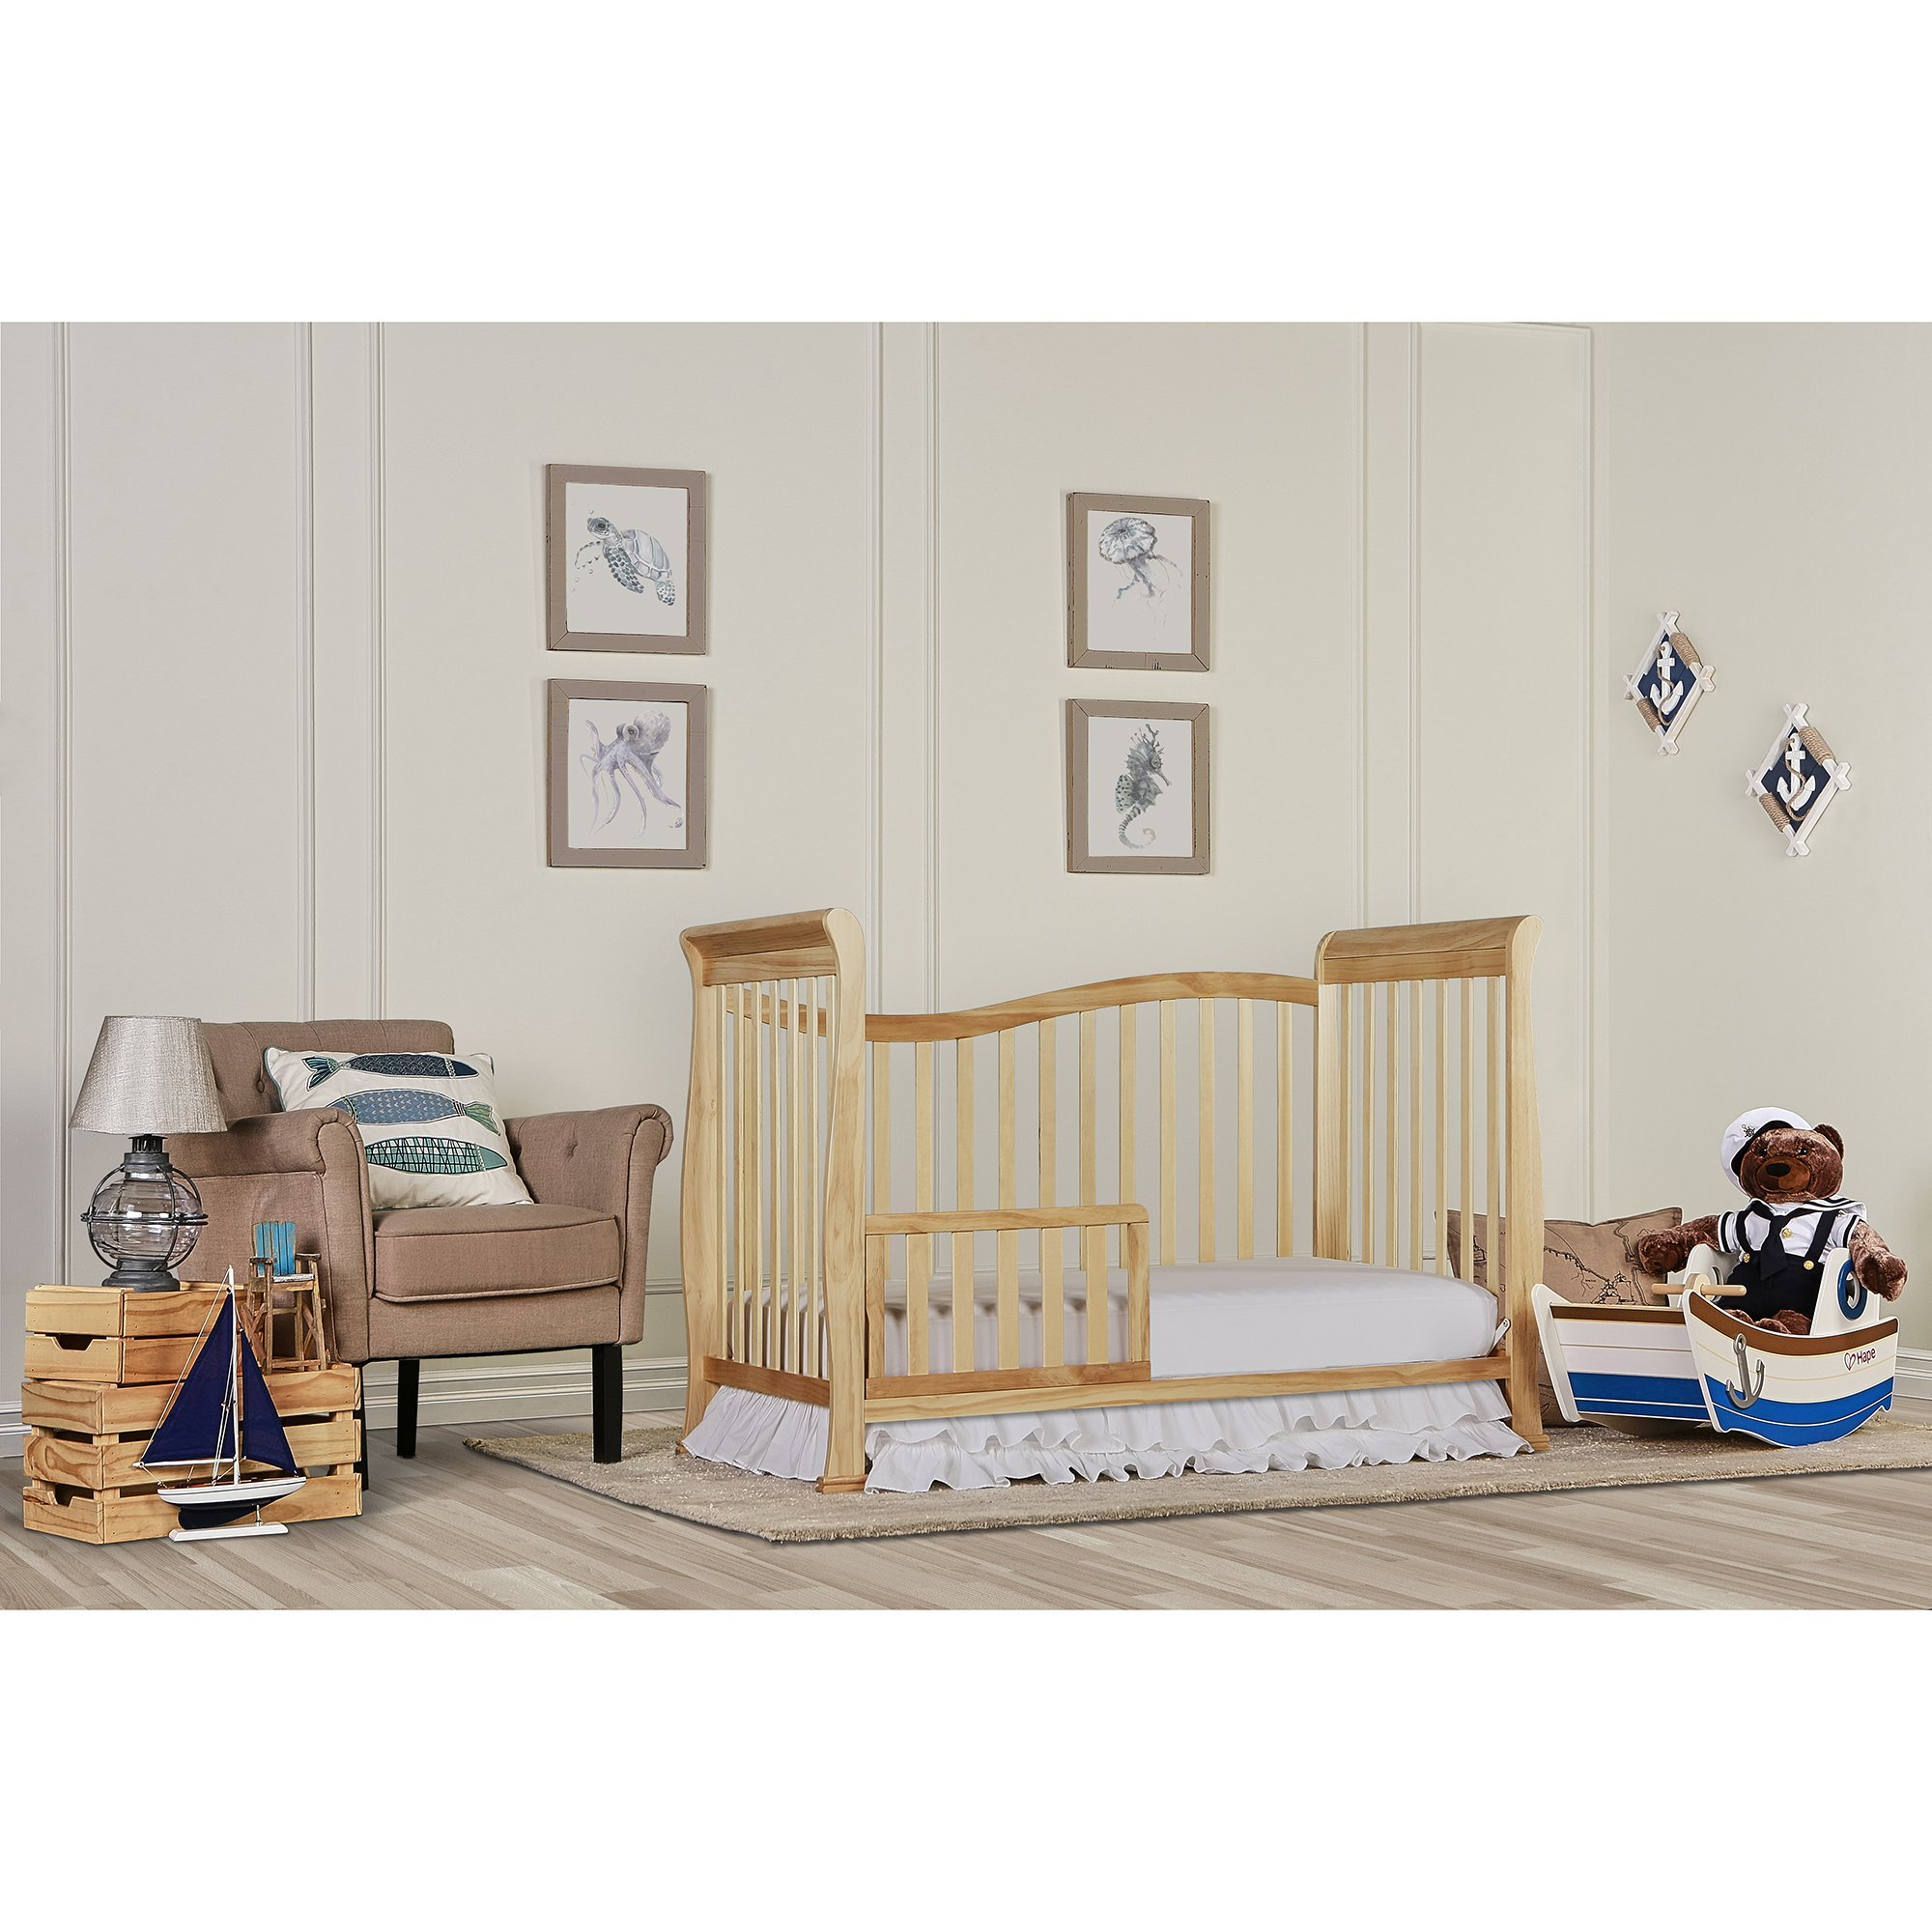 Dream On Me Violet 7 in 1 Convertible Life Style Crib, Natural by Dream On Me (Image #3)